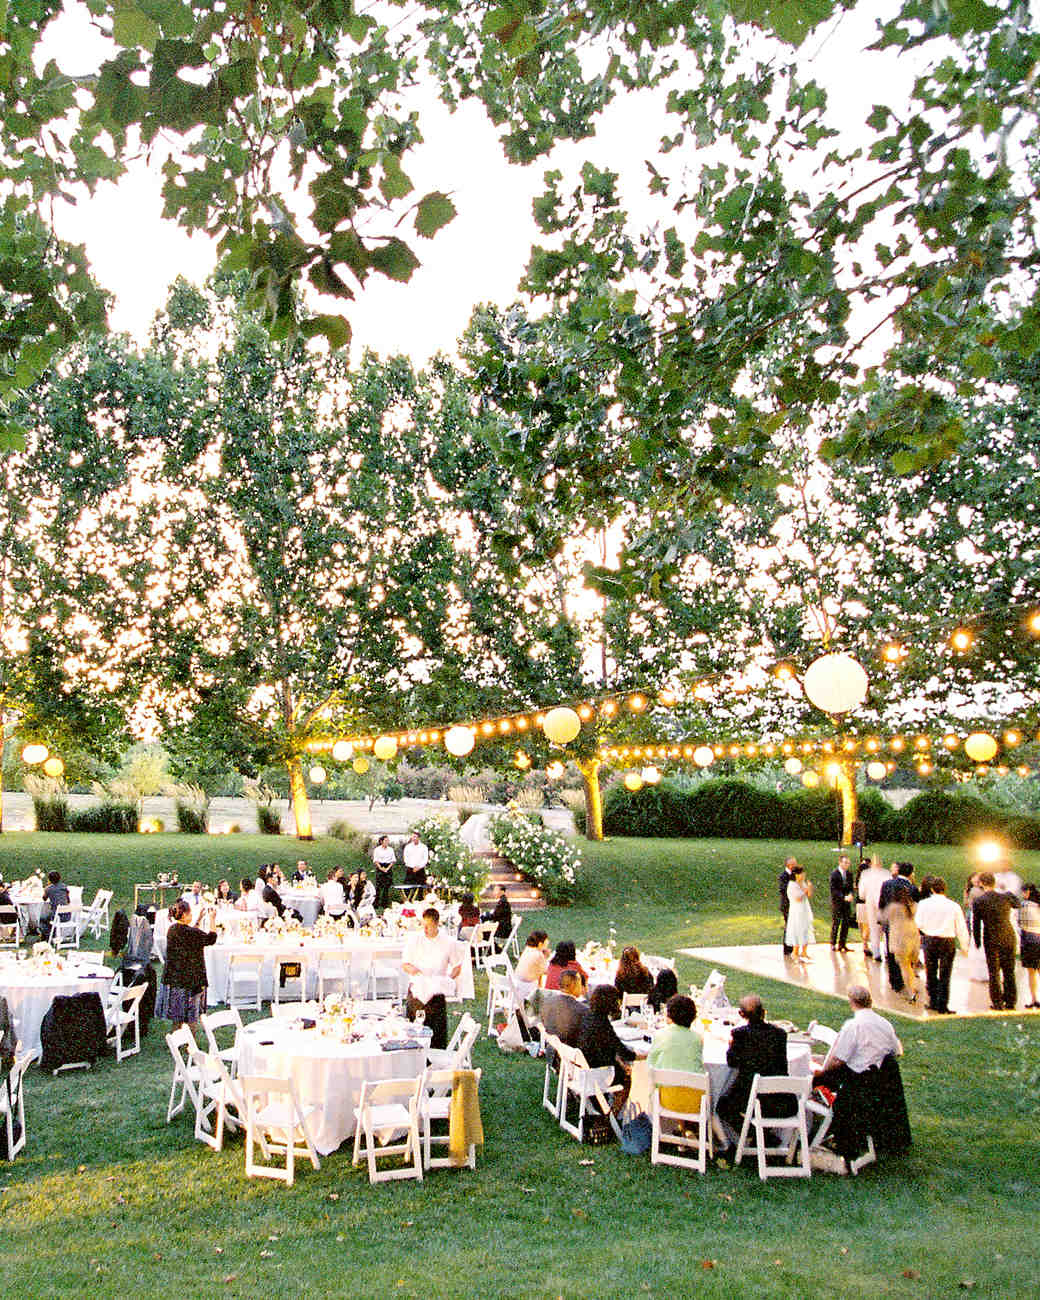 Outdoor Wedding Reception Ideas: Outdoor Wedding Lighting Ideas From Real Celebrations